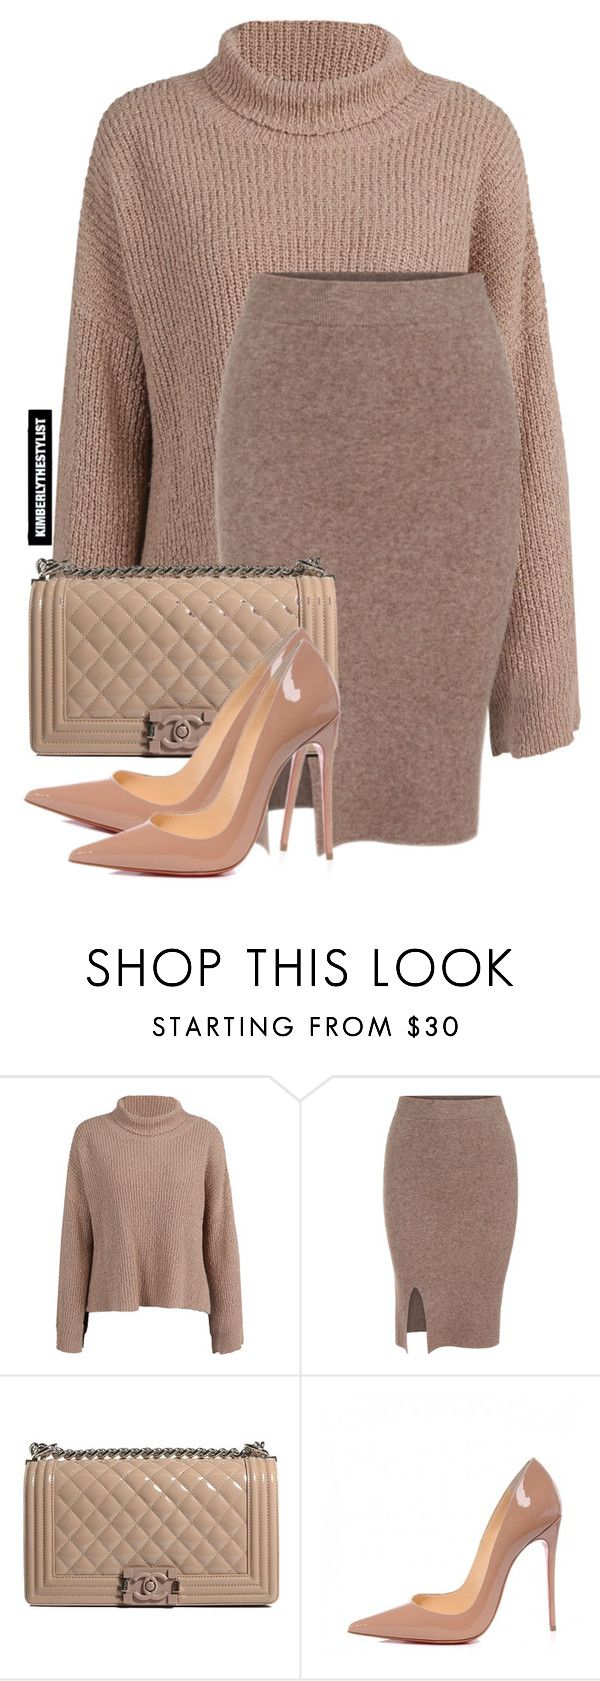 Untitled #2108 by kimberlythestylist ❤ liked on Polyvore featuring Chanel and Christian Louboutin